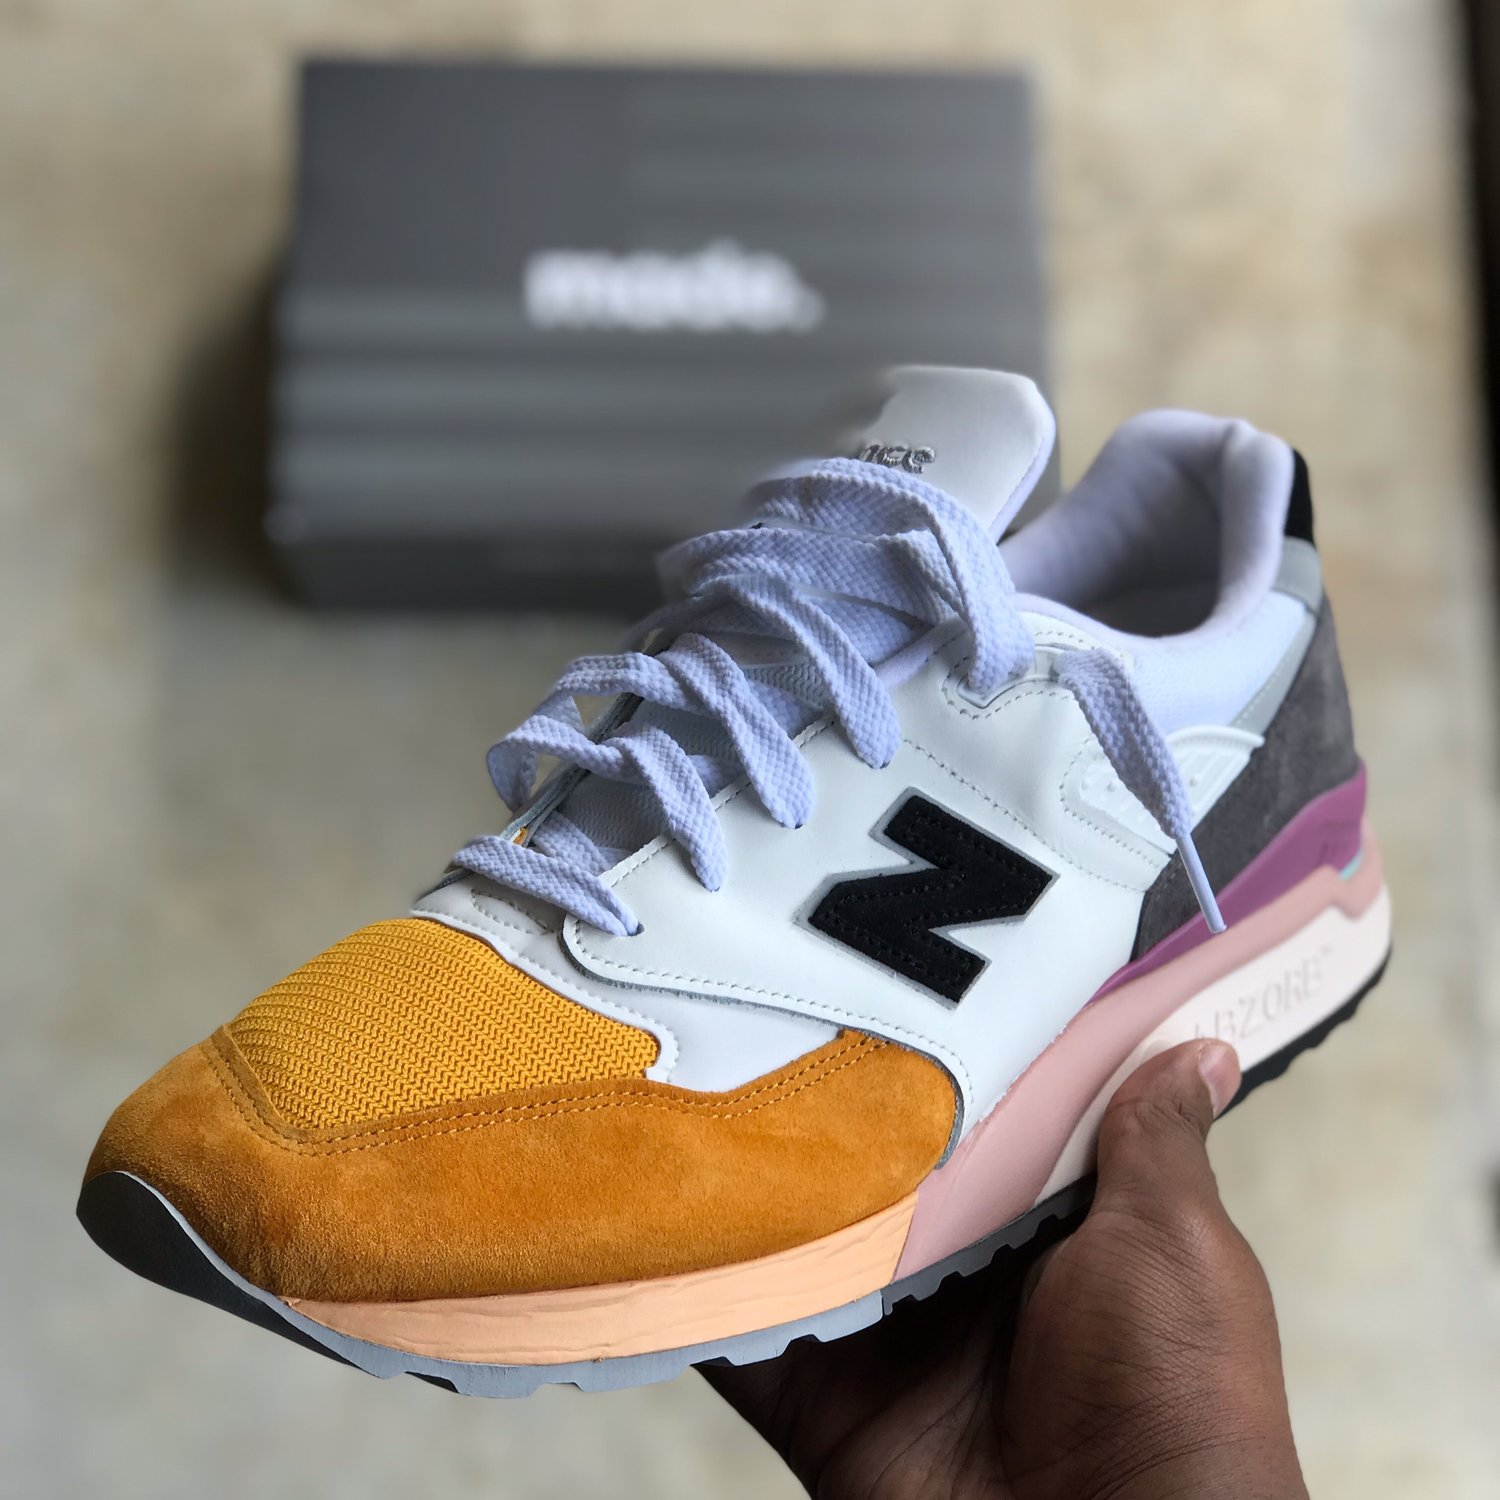 persona Cerebro Evento  How Does The New Balance 998 Fit? [Easy Sizing Guide]